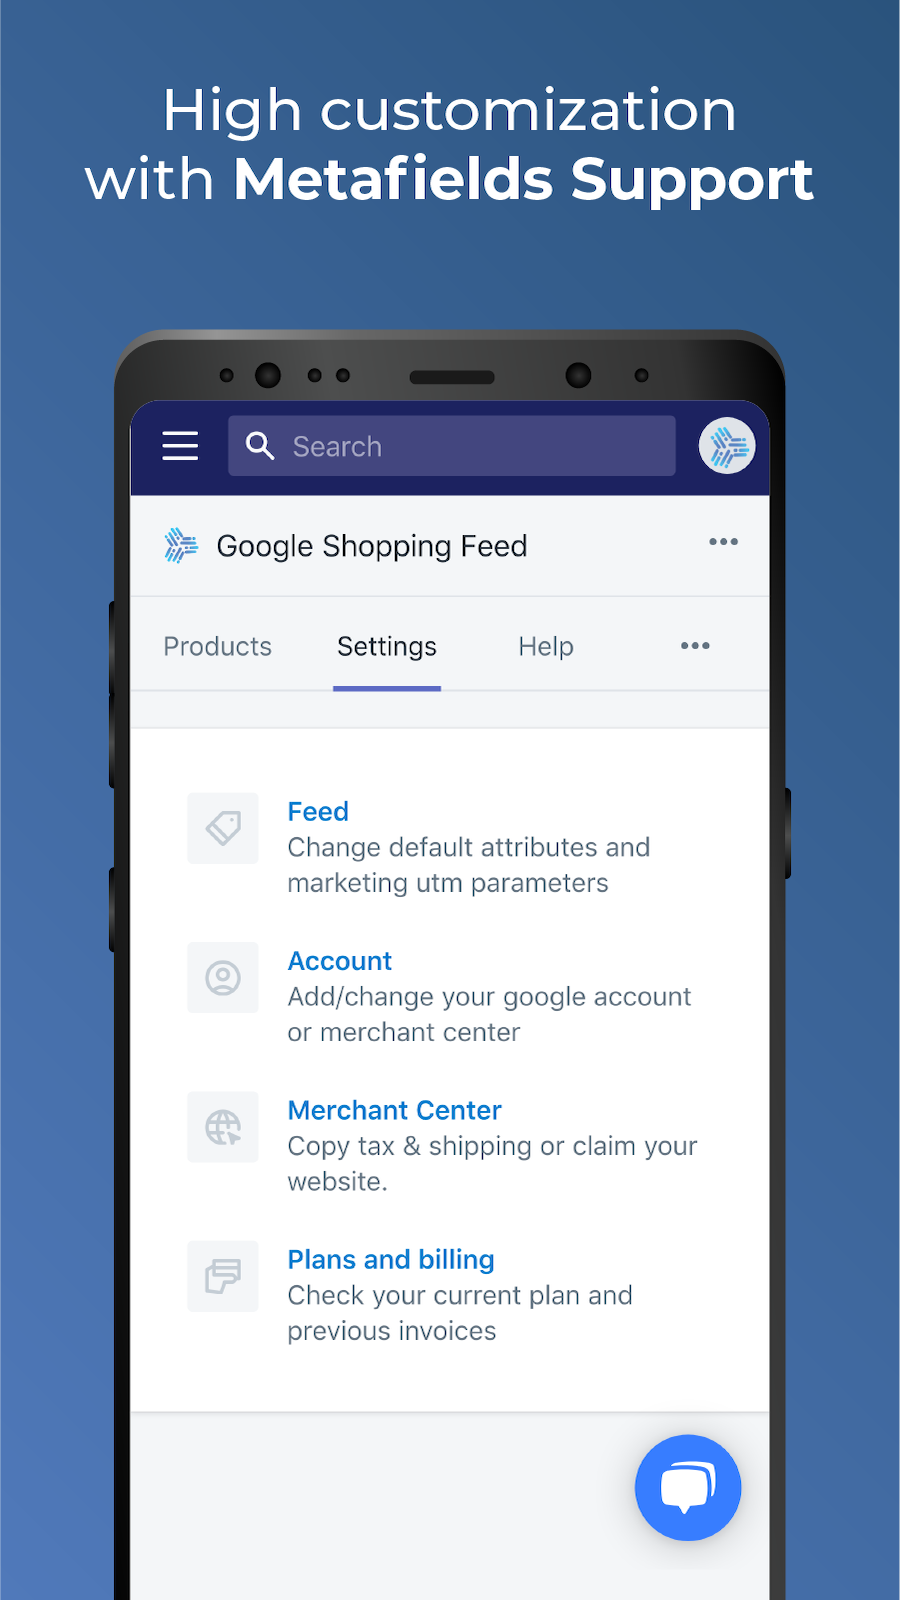 Highly customizable with metafields support for Google Shopping